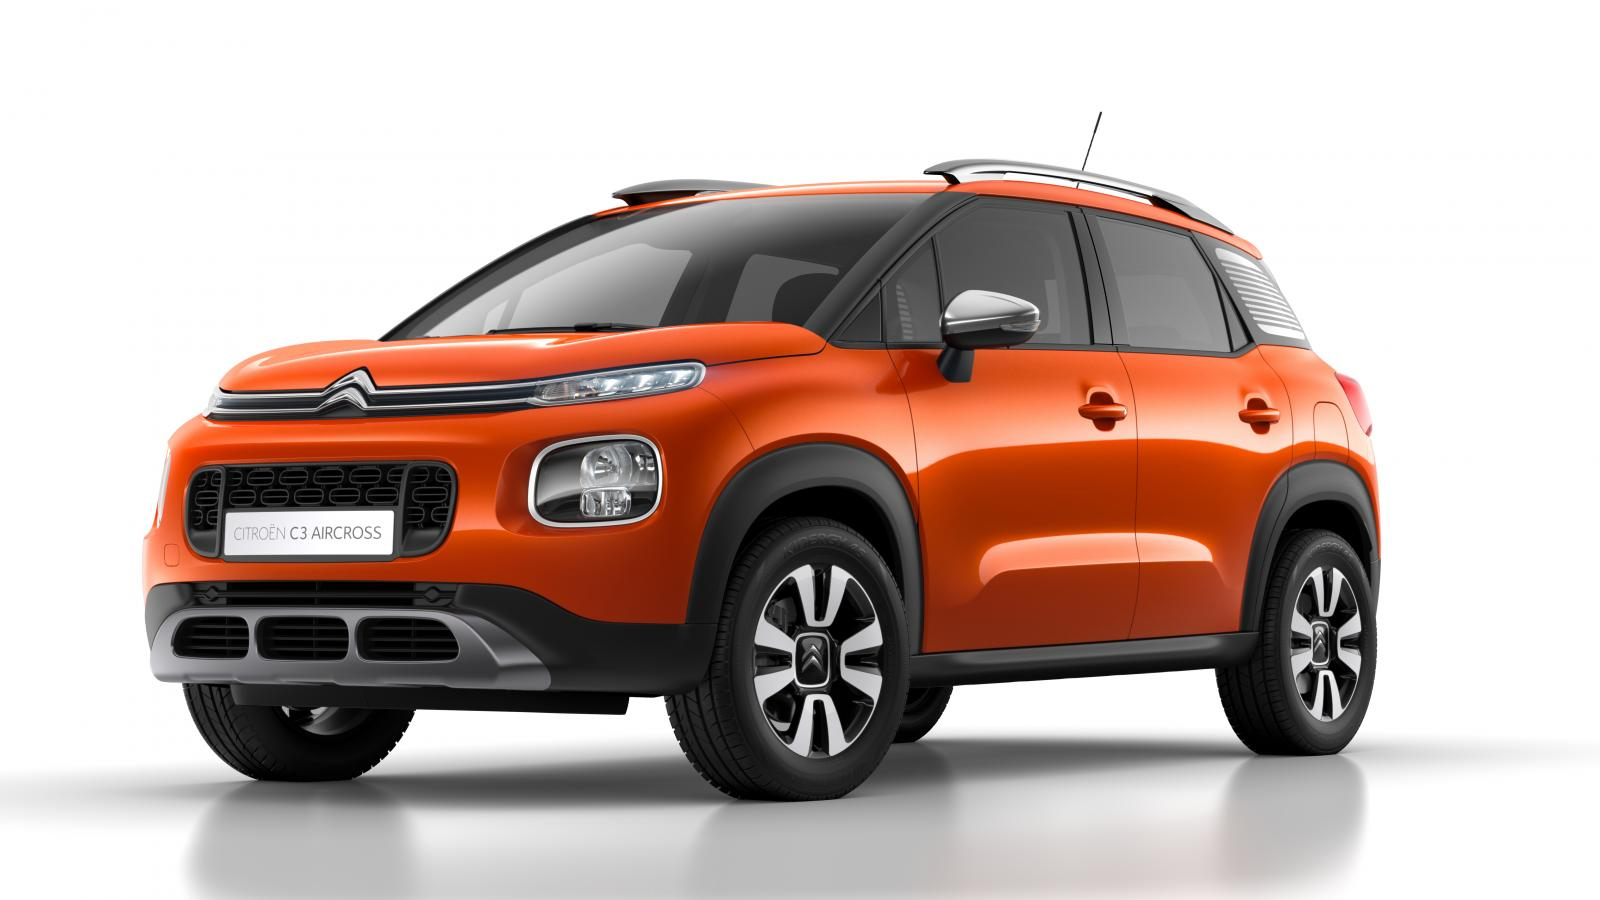 Compact SUV C3 Aircross Power-Orange